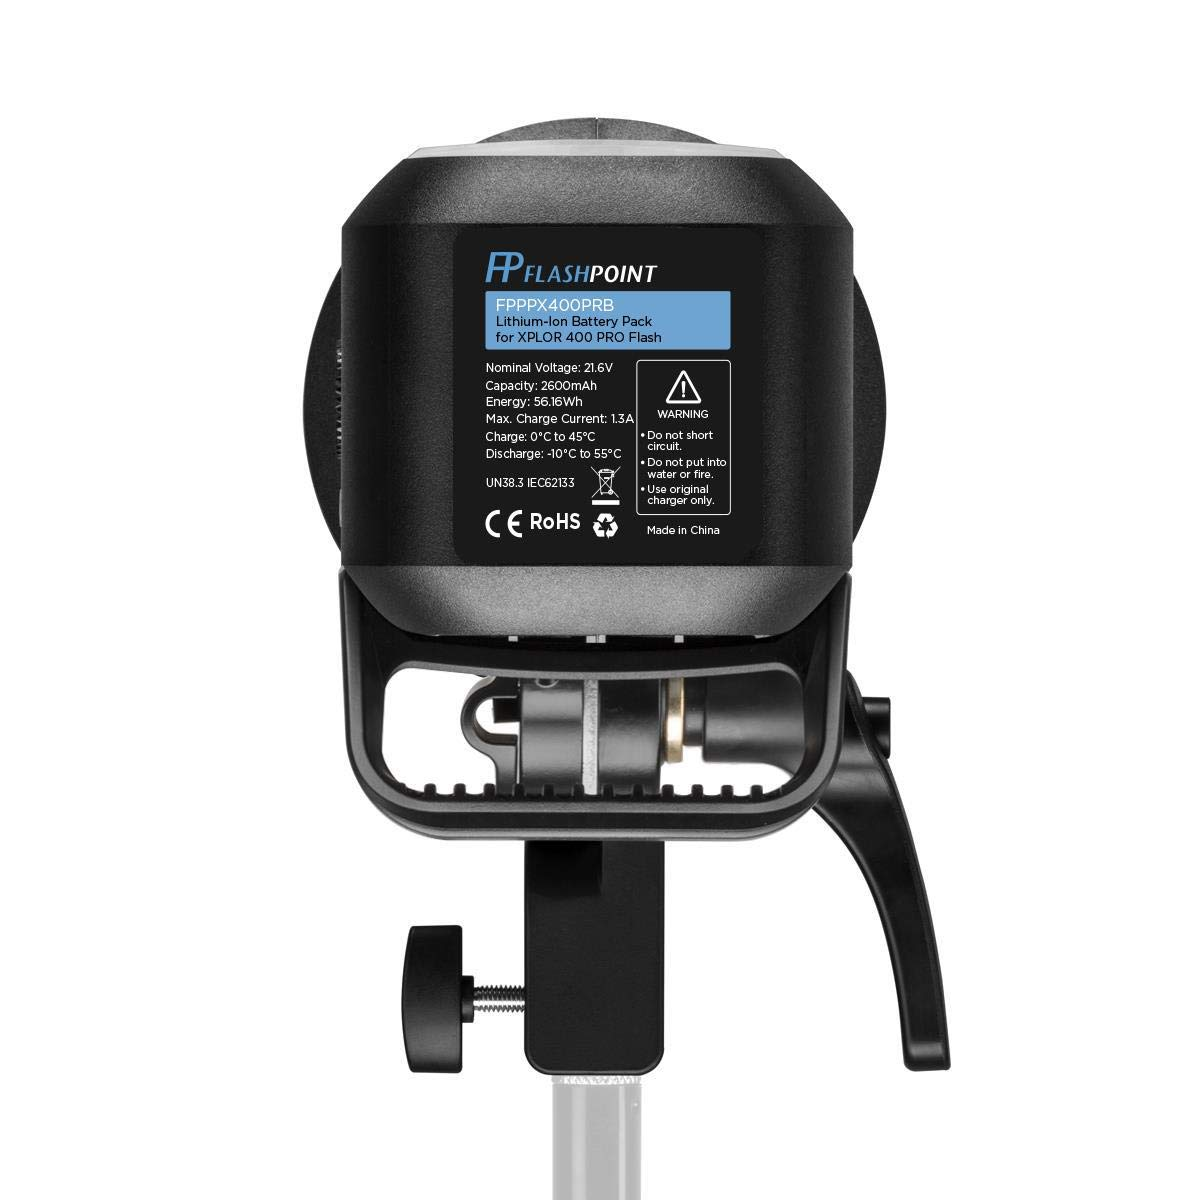 Flashpoint XPLOR 400PRO TTL Battery-Powered Monolight with Built-in R2 2.4GHz Radio Remote System (with Bowens Mount Adapter) - Godox AD400 Pro by Flashpoint (Image #4)